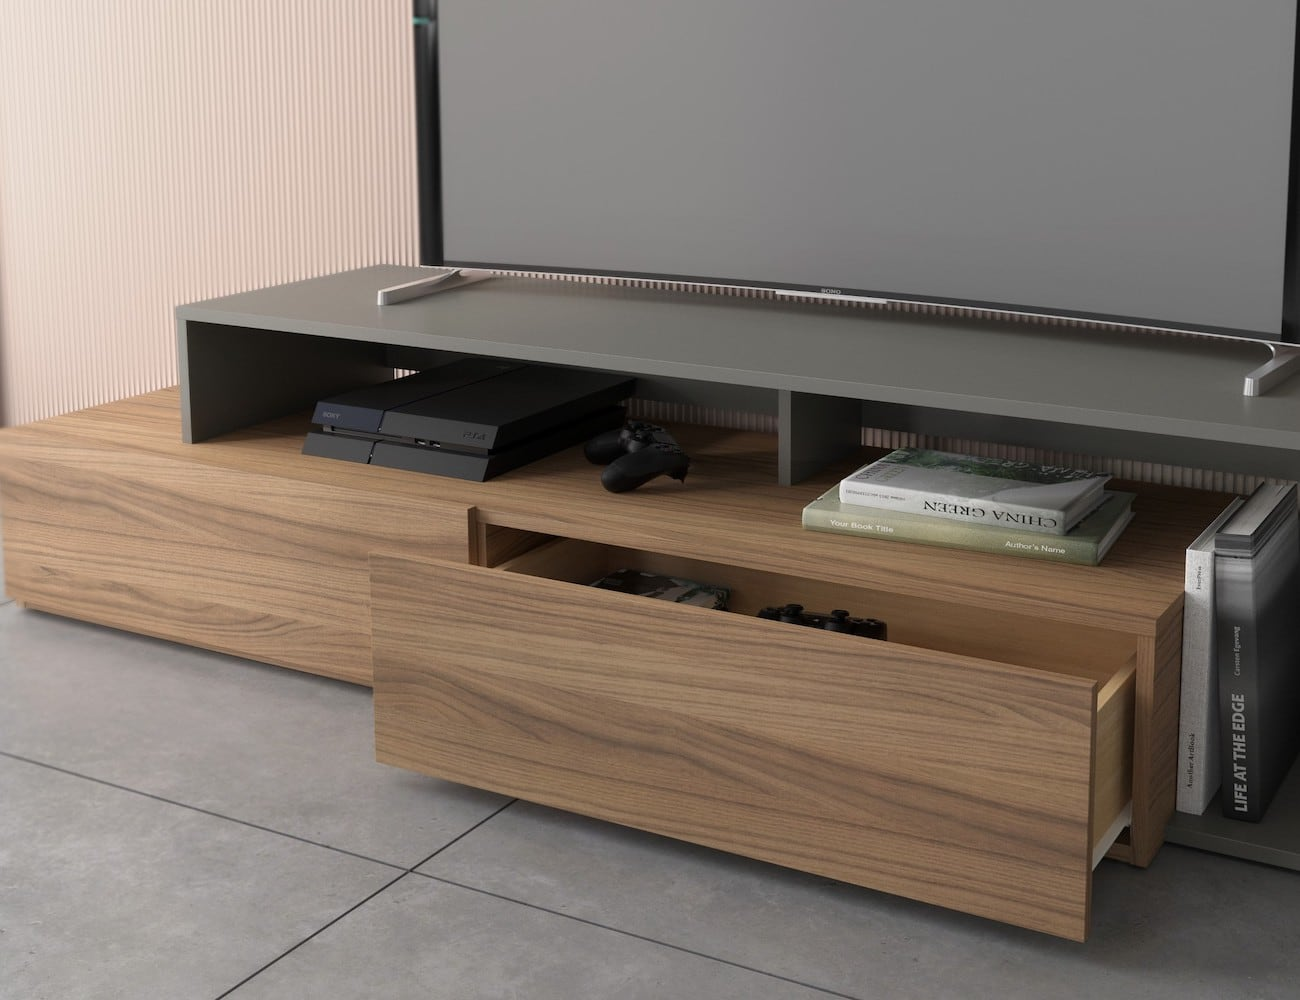 Tonik Collection 72-Inch TV Stand adds a minimalist and modern touch to your living room